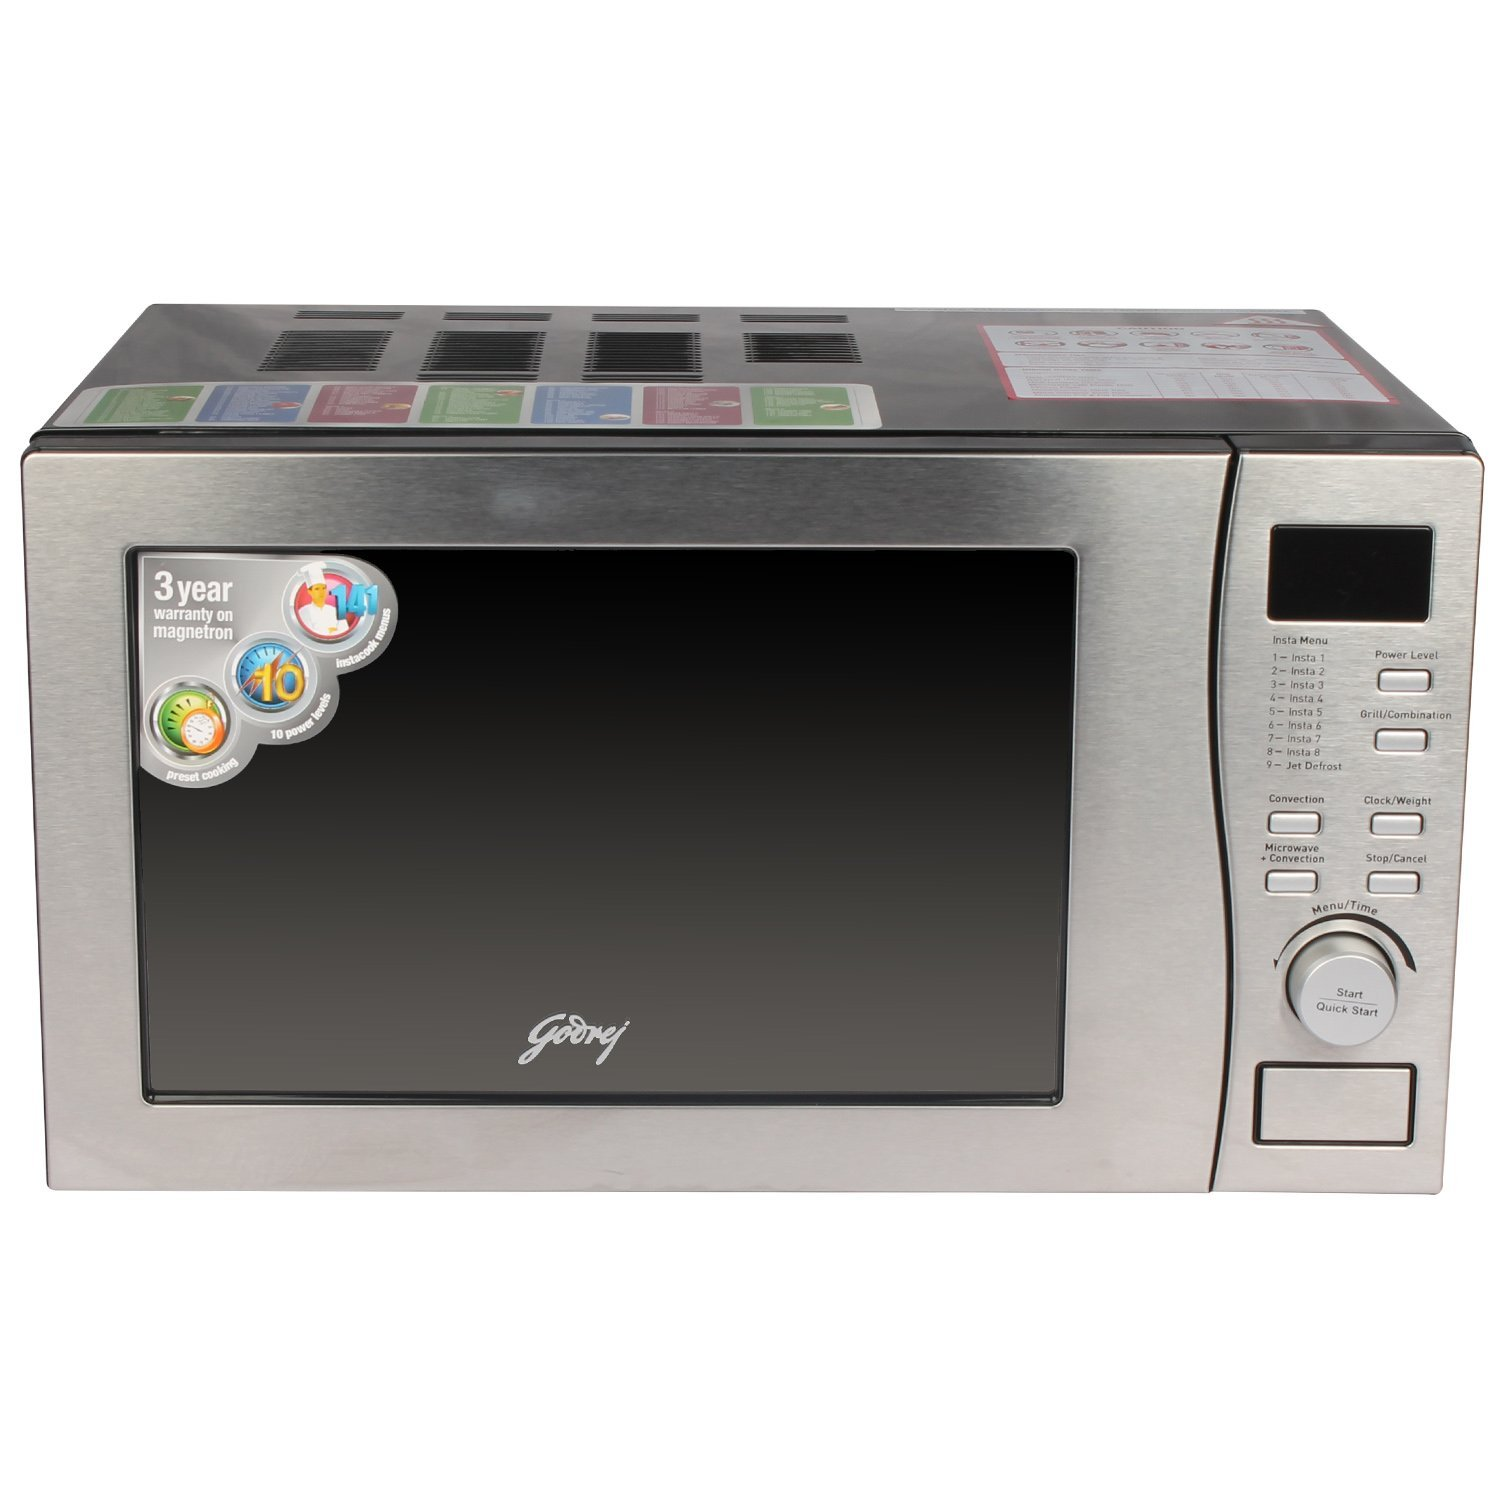 How To Select The Best Microwave Oven For Home Use In 2019